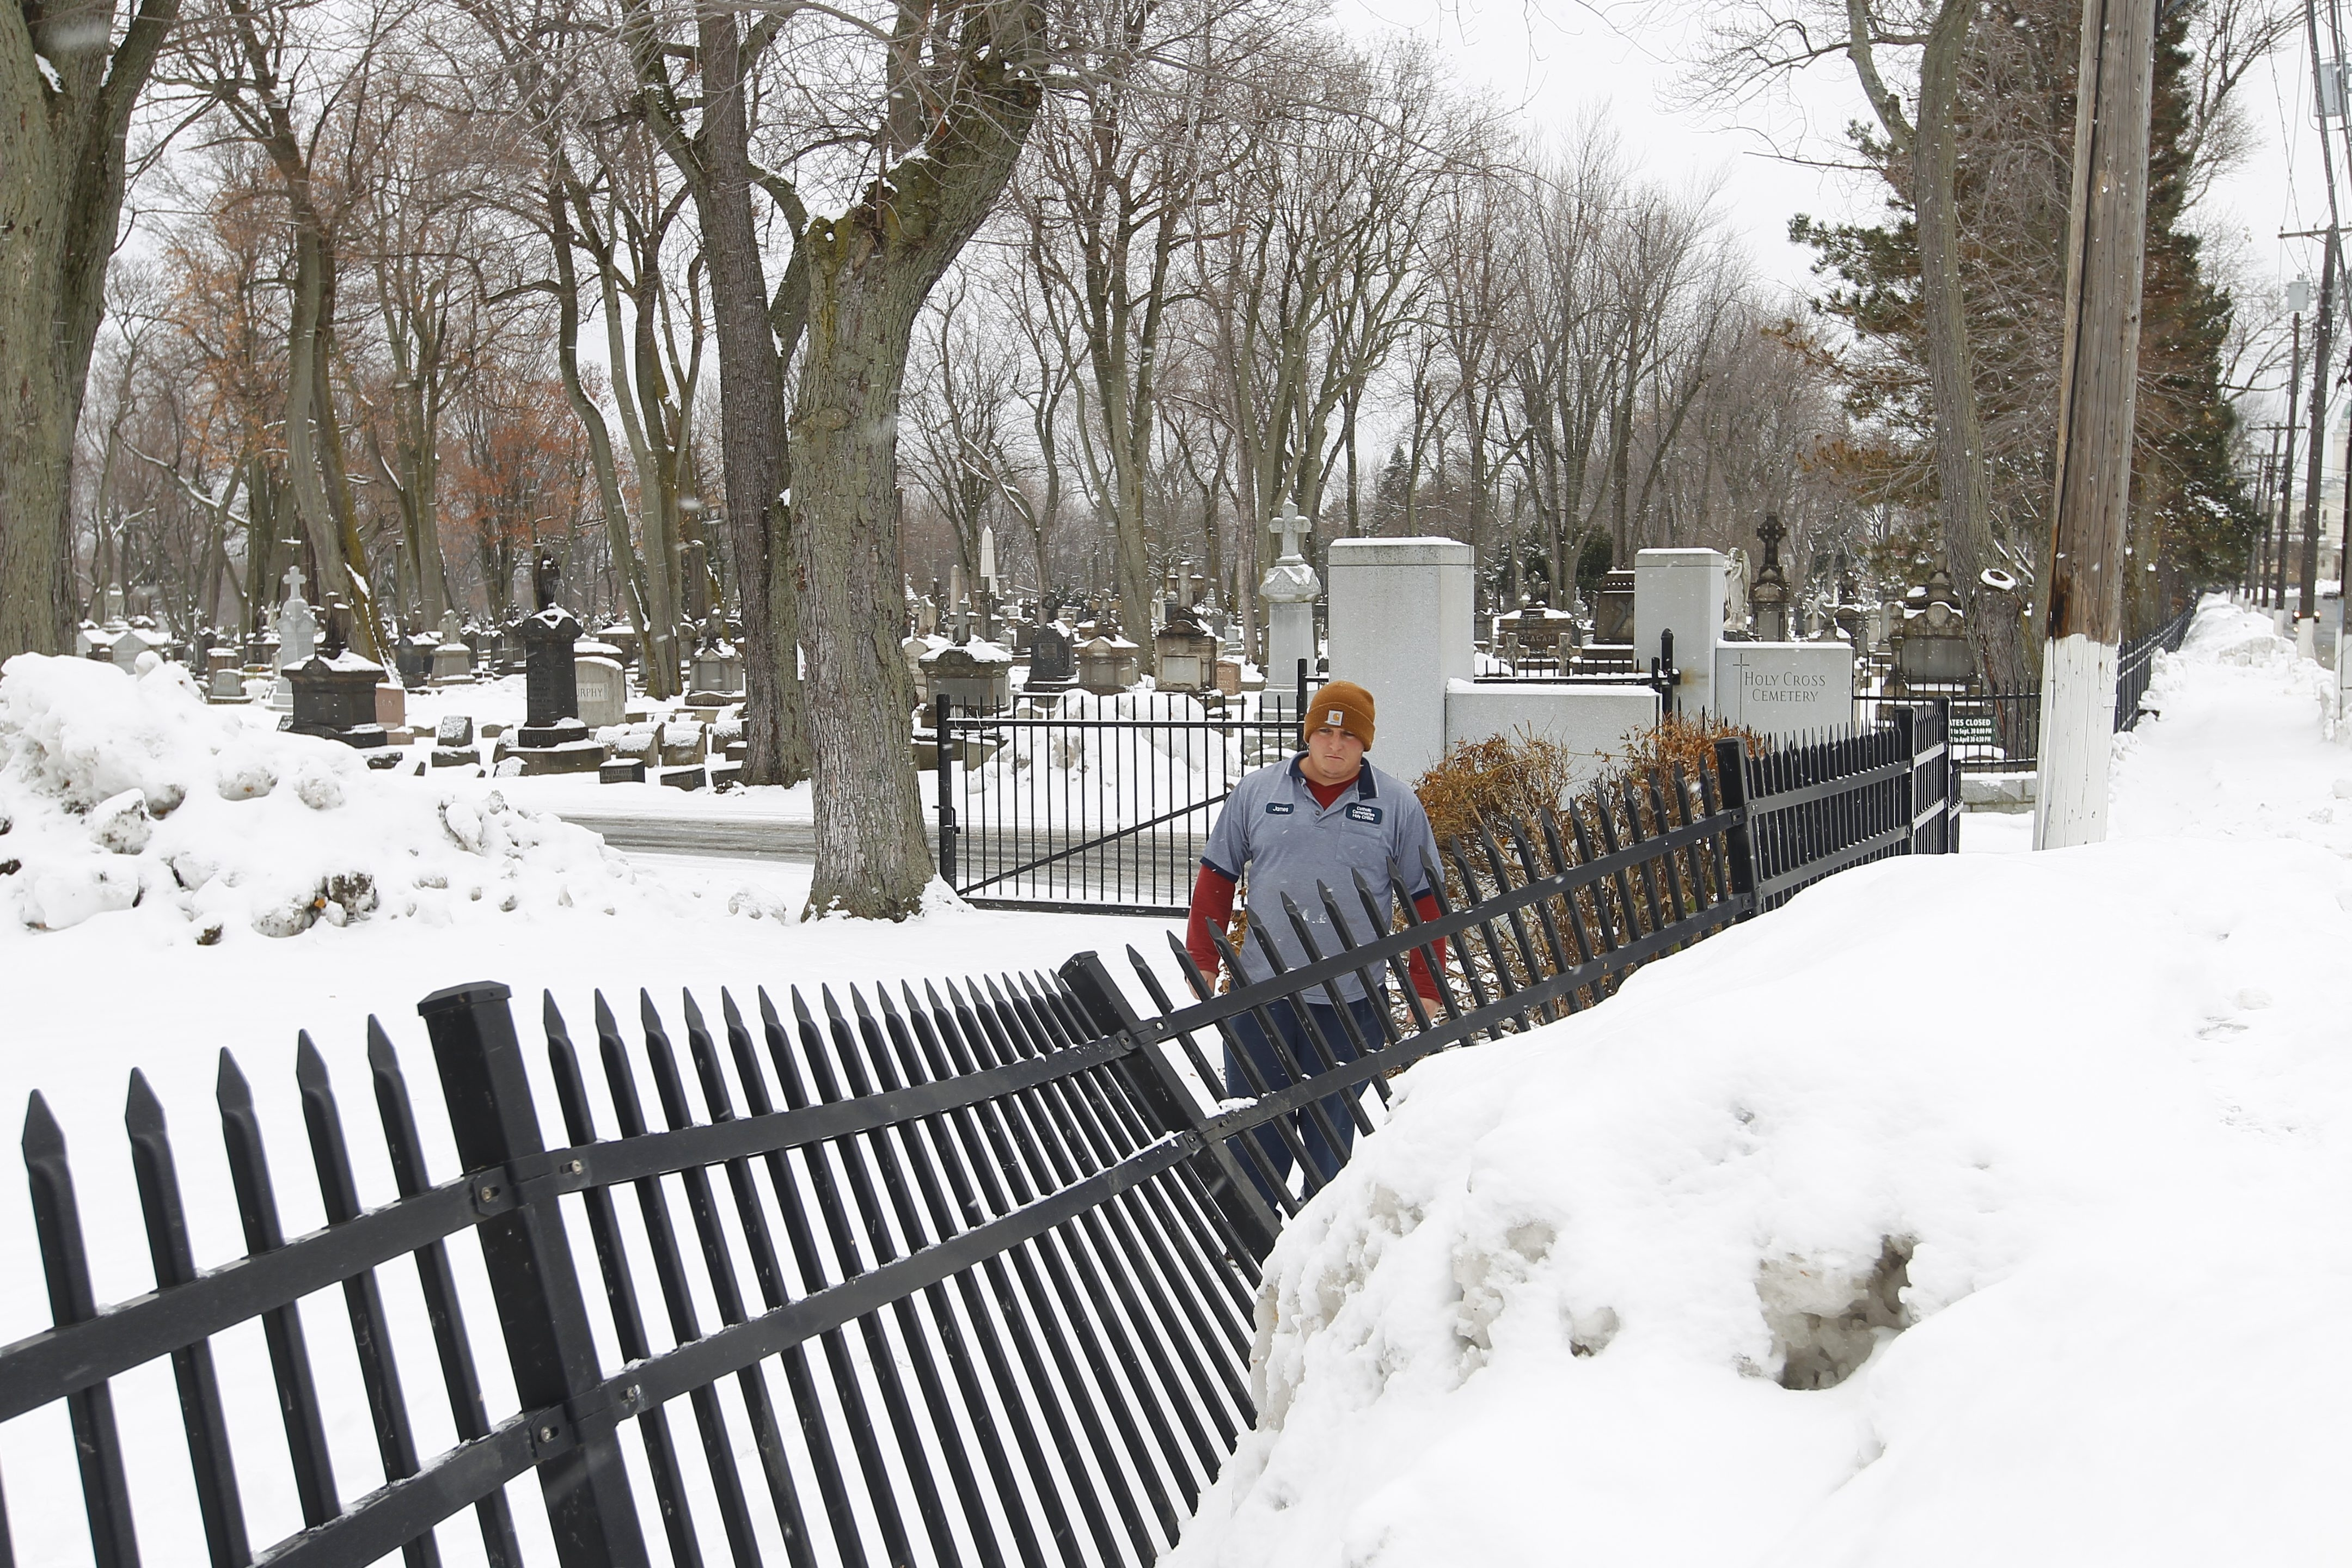 Jim Roche, a groundskeeper at Holy Cross cemetery, looks at damage to a fence running along Ridge Road in Lackawanna. The Snowvember storm prevented employees from getting to work and delayed dozens of burials, which resumed Monday.